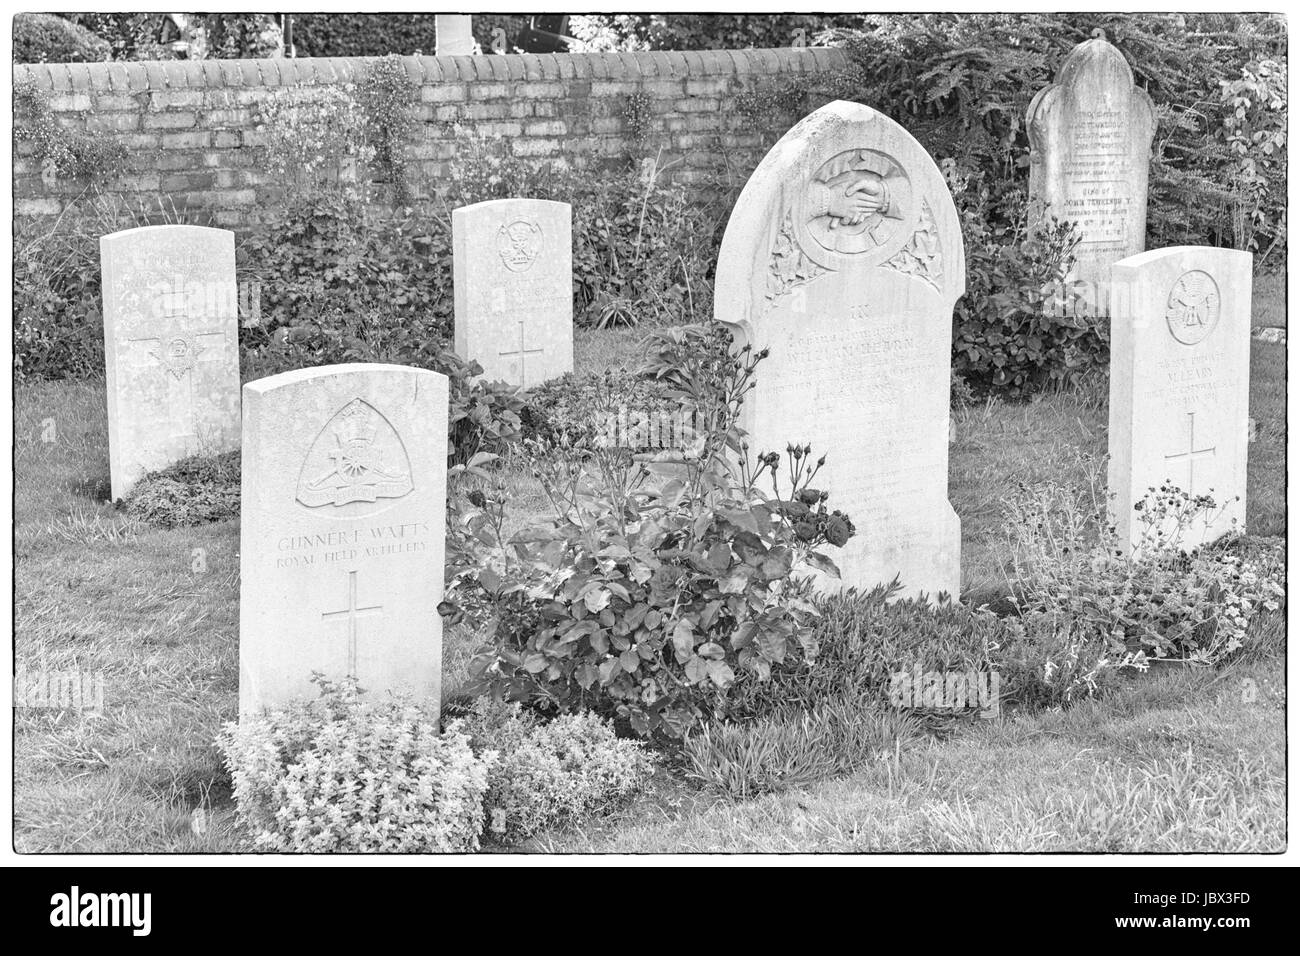 Military graves in churchyard at Lady St Mary Church Wareham, Dorset in June - Stock Image